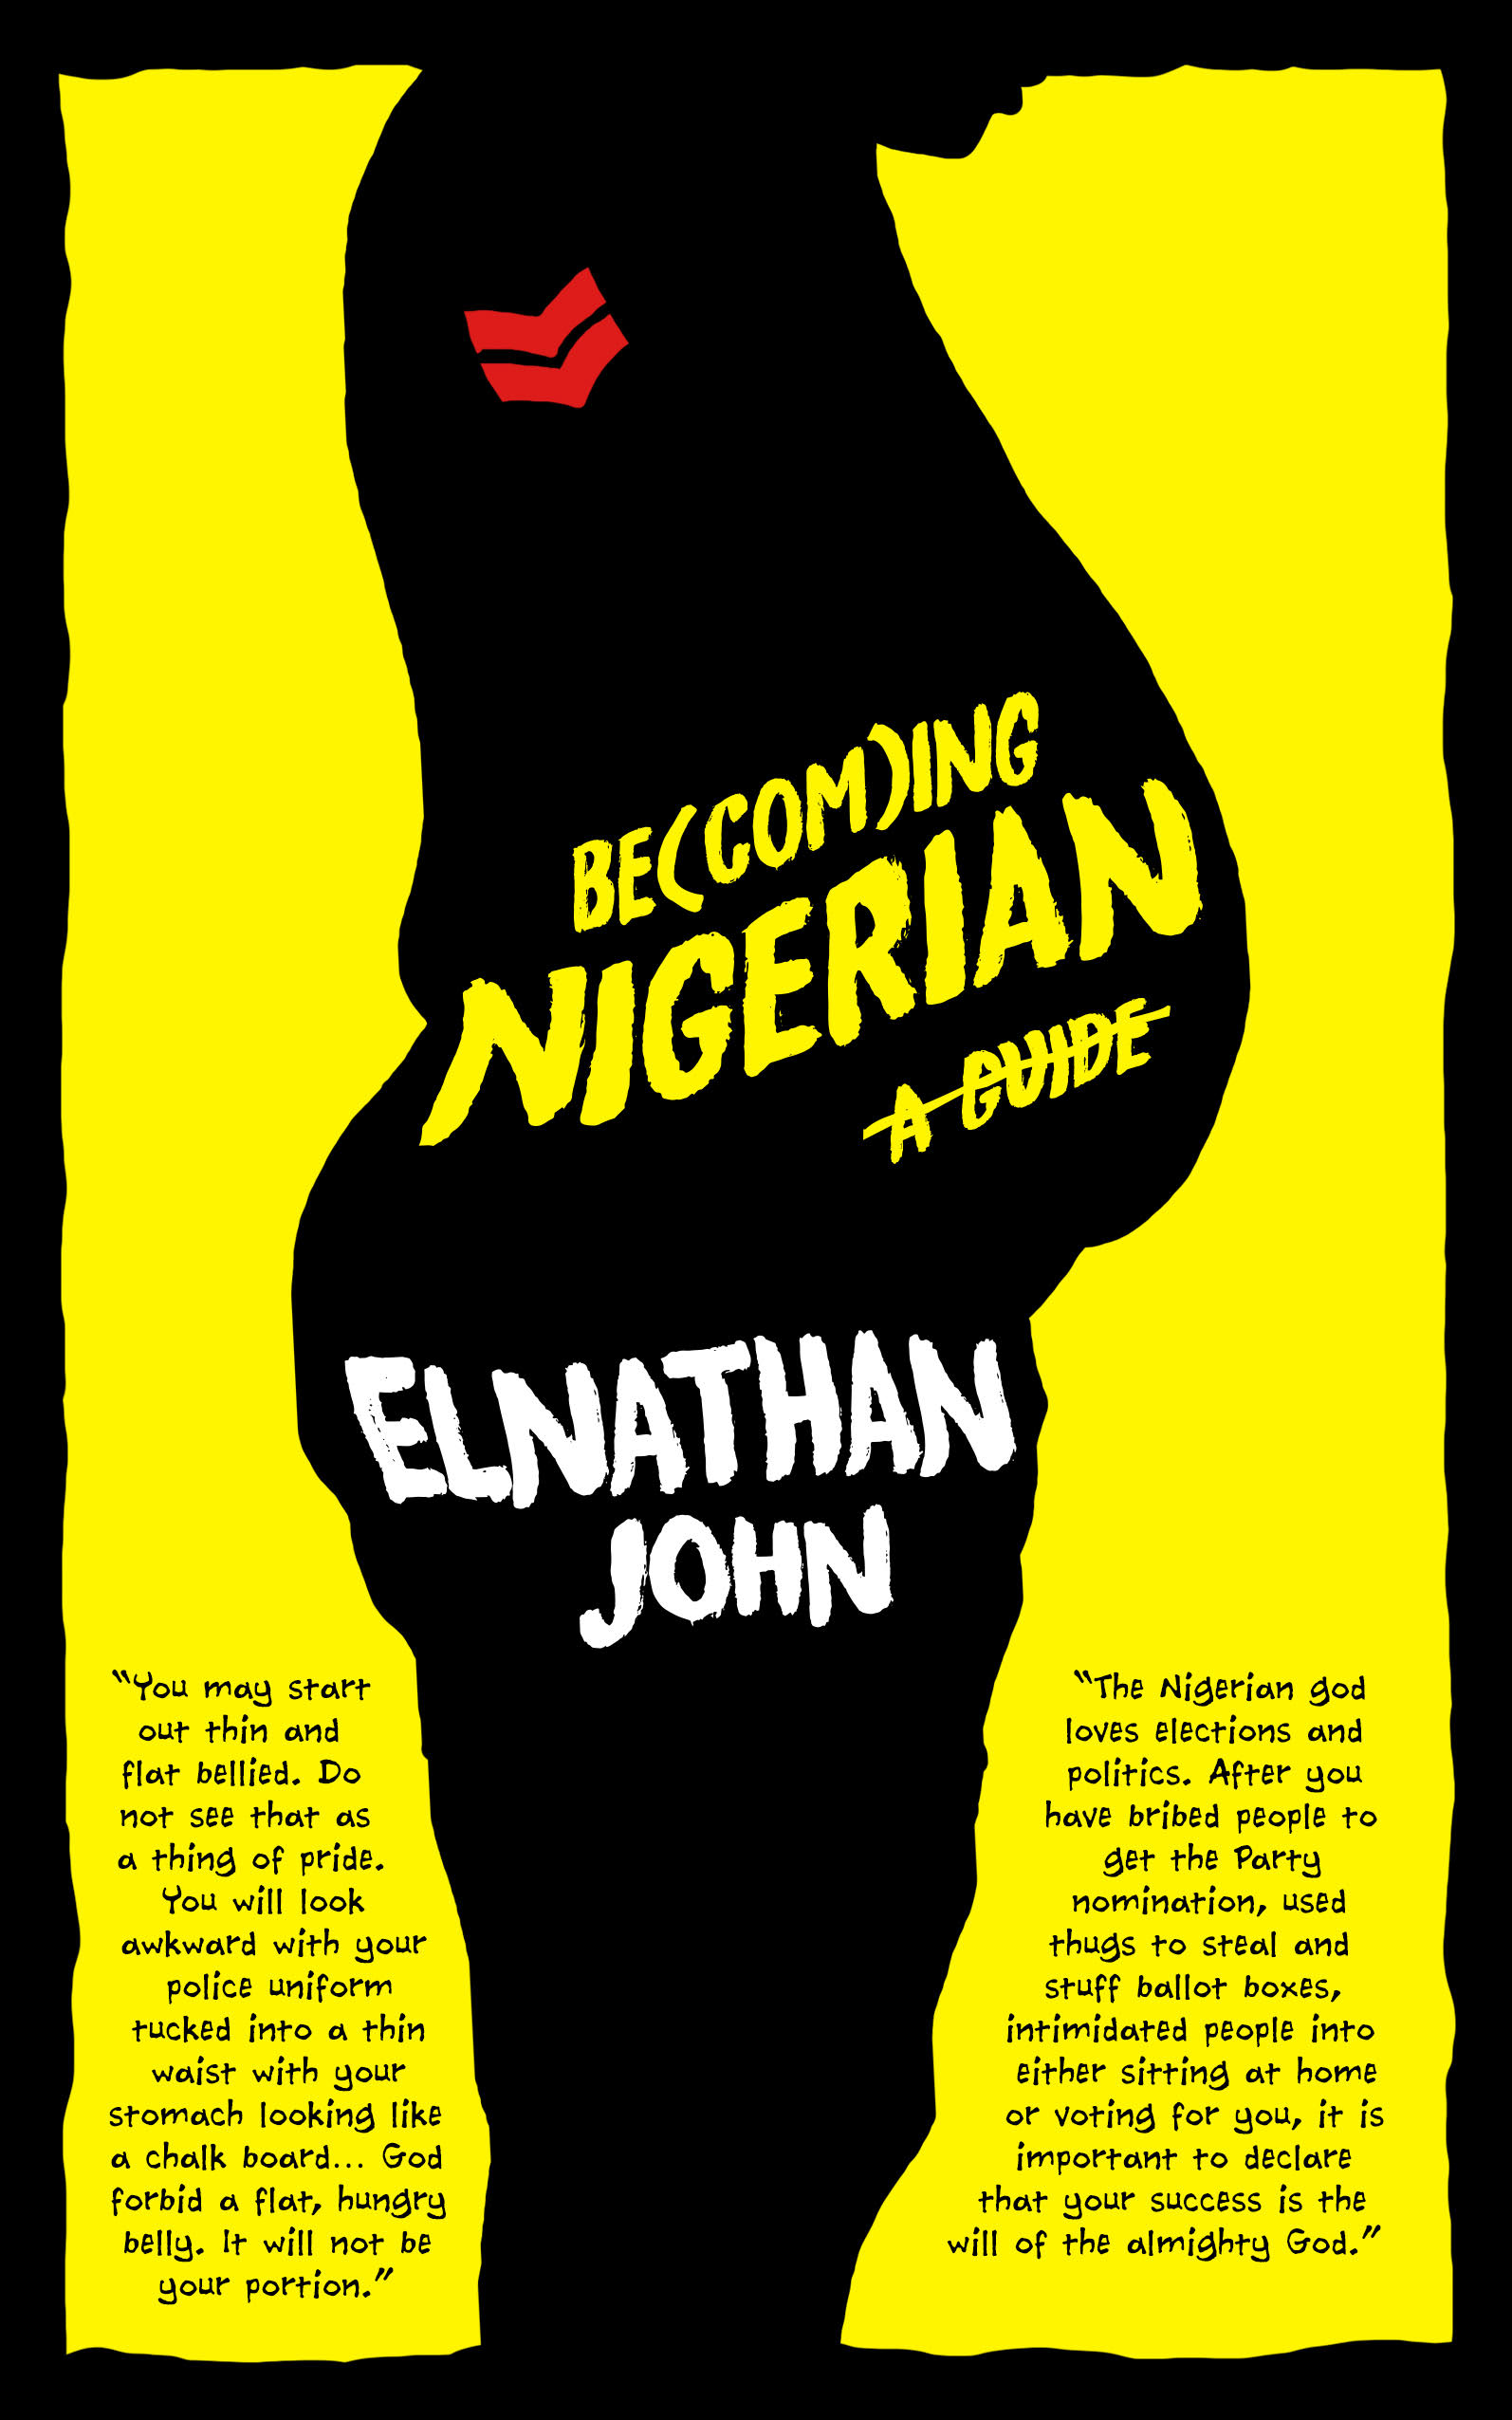 Cassava Republic Releases Be(com)ing Nigerian:A Guide by Elnathan John